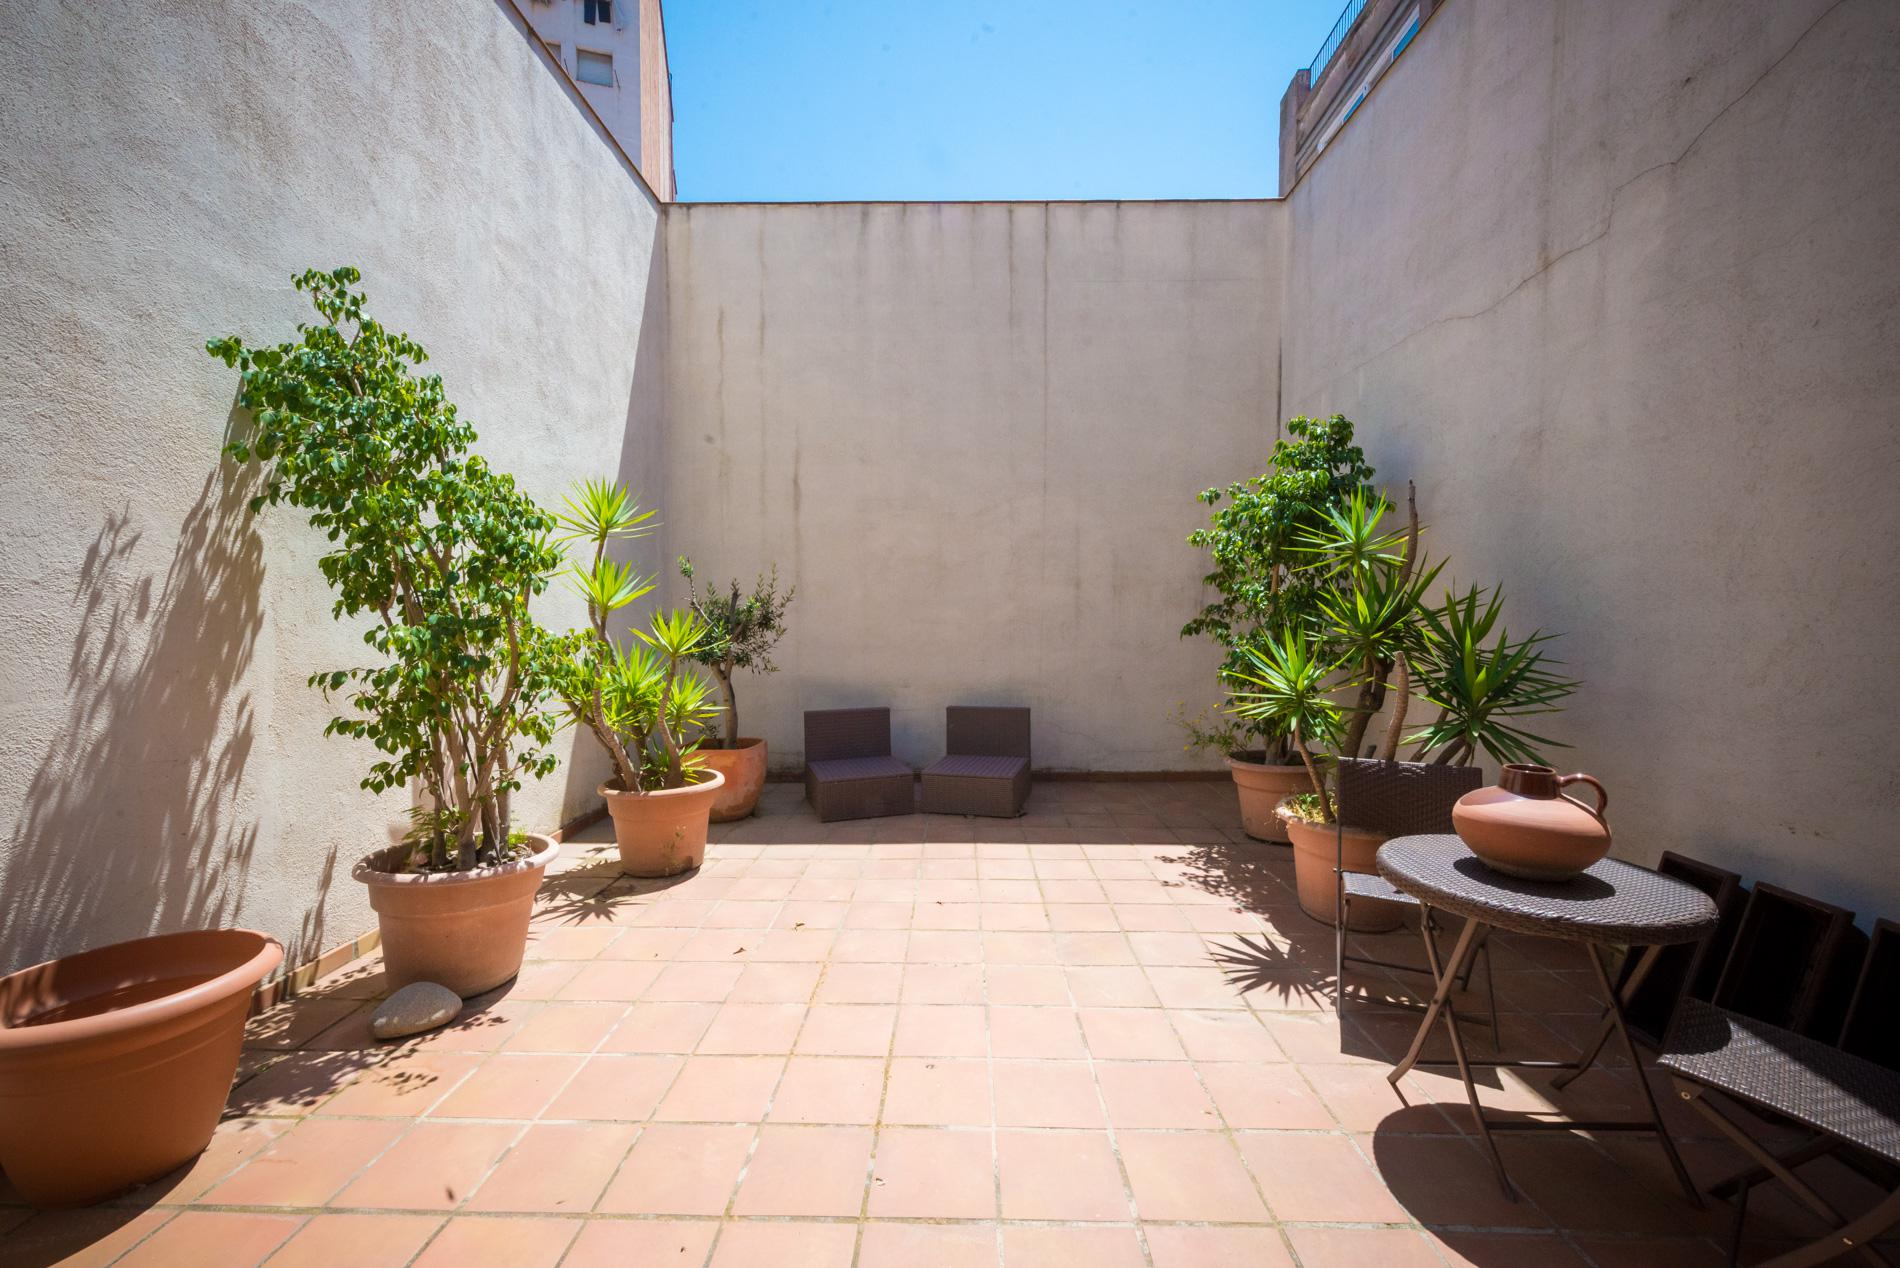 239277 Semi-detached house for sale in Sants-Montjuïc, Sants 29